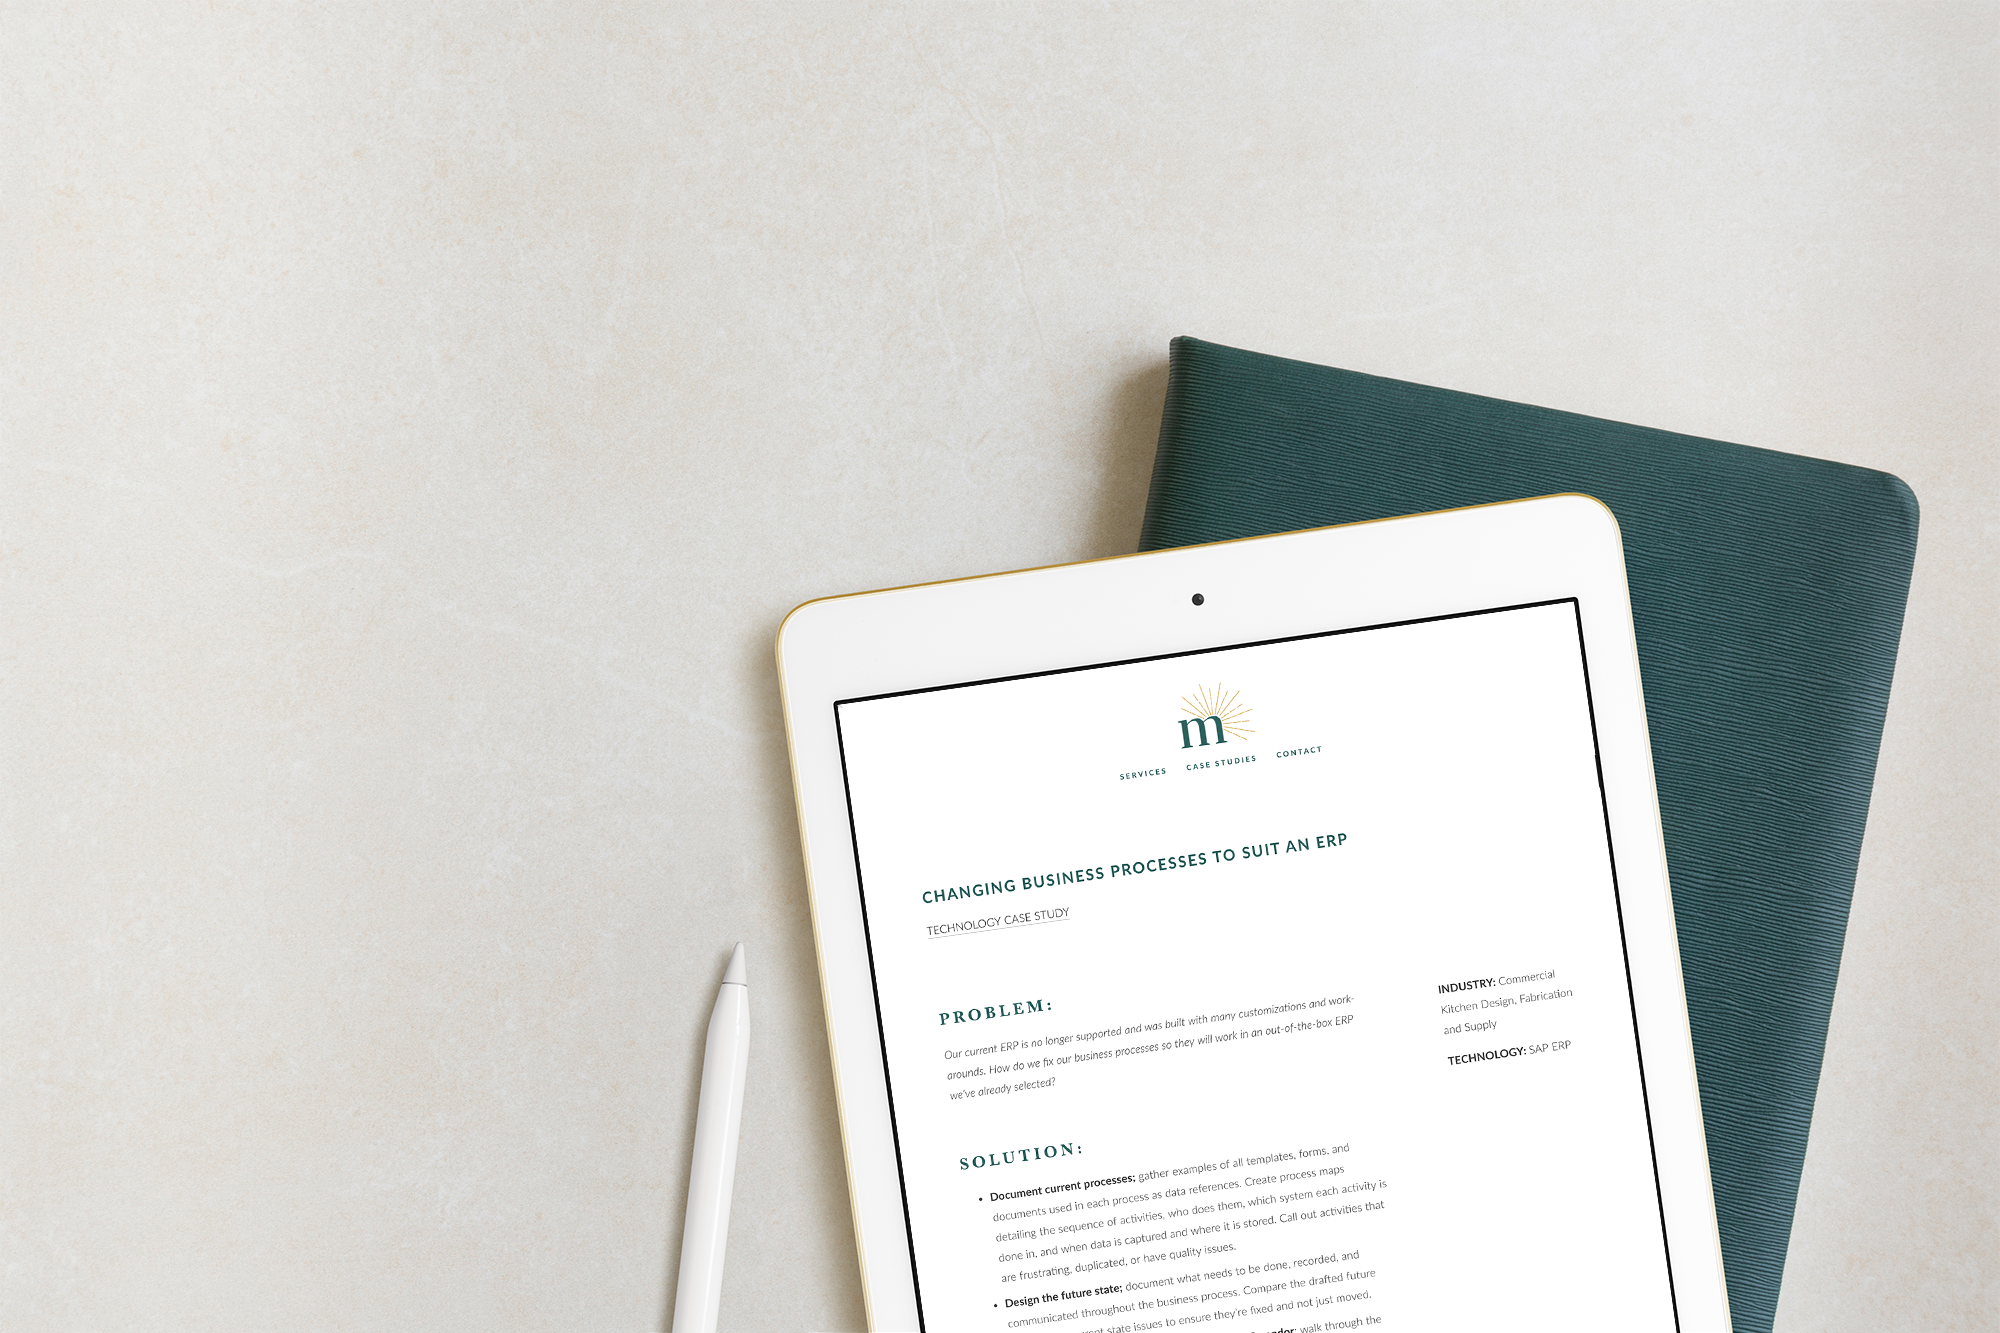 Case Study from Meira Consulting setup as a custon blog template on their Squarespace website. Shown on an ipad mockup with a green notebook.